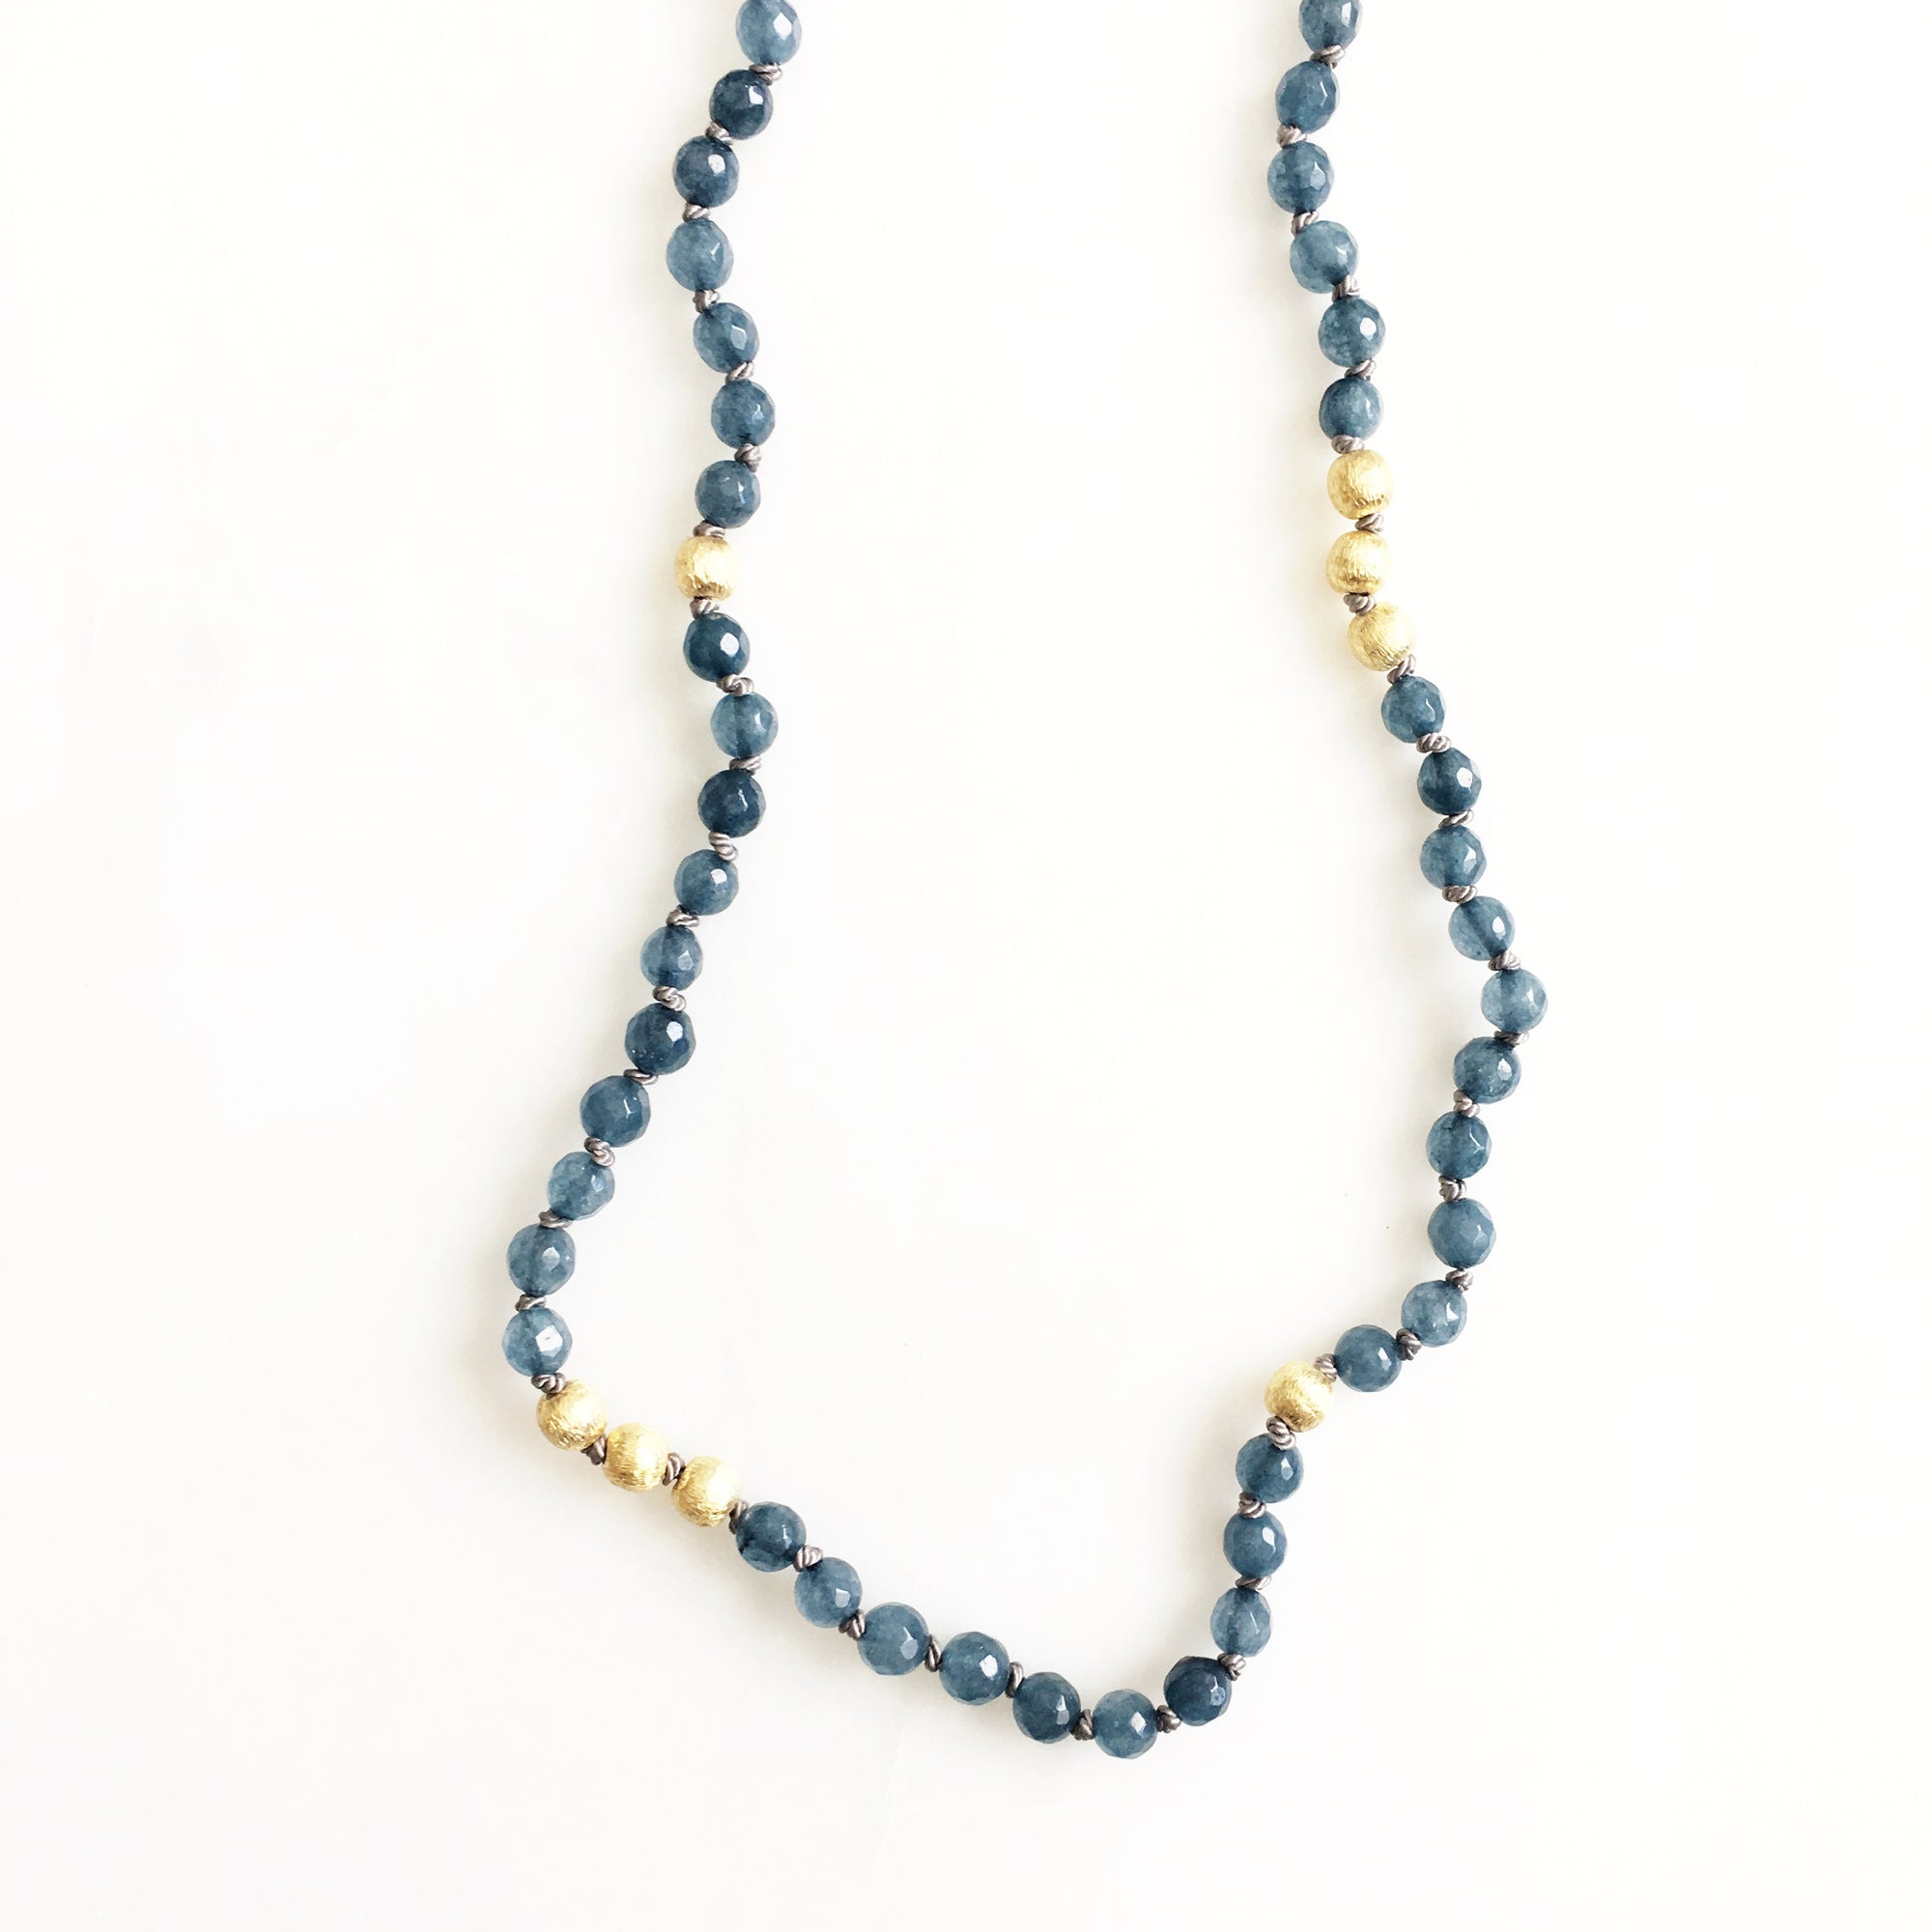 Solana Indigo Jade Necklace